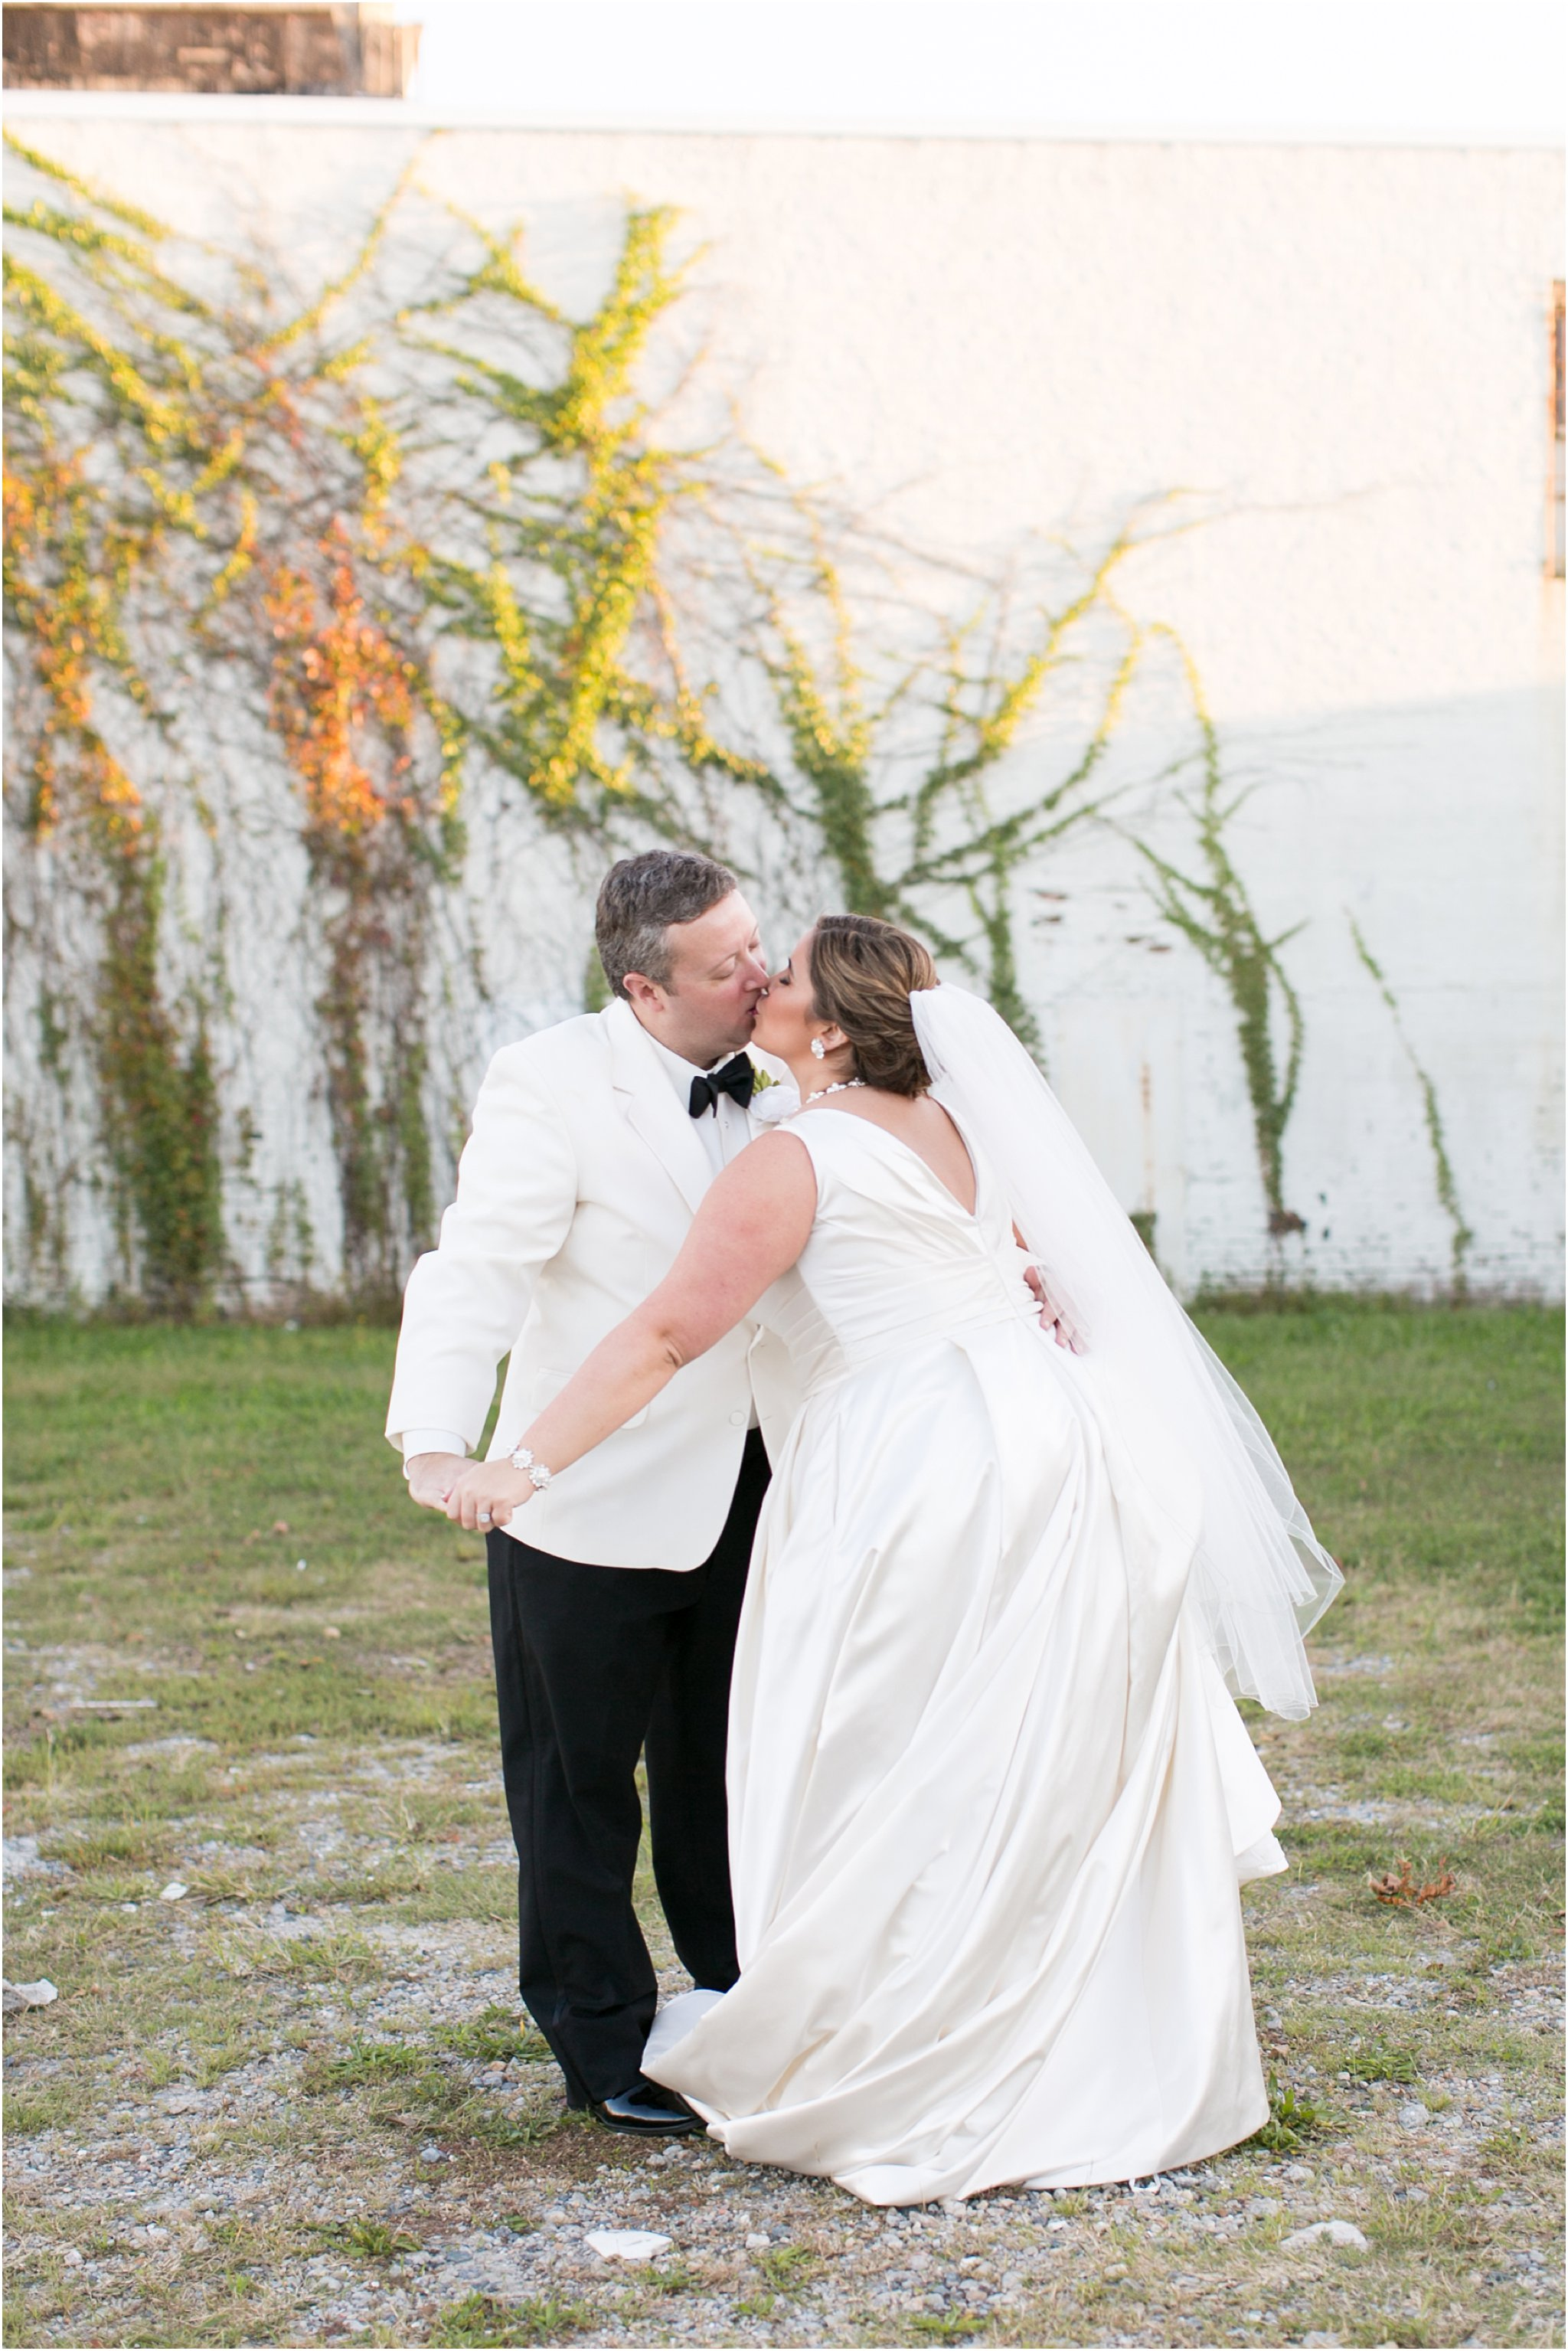 va_jessica_ryan_photography_virginia_wedding_norfolk_harrison_opera_house_norfolk_arts_district_portraits_3832